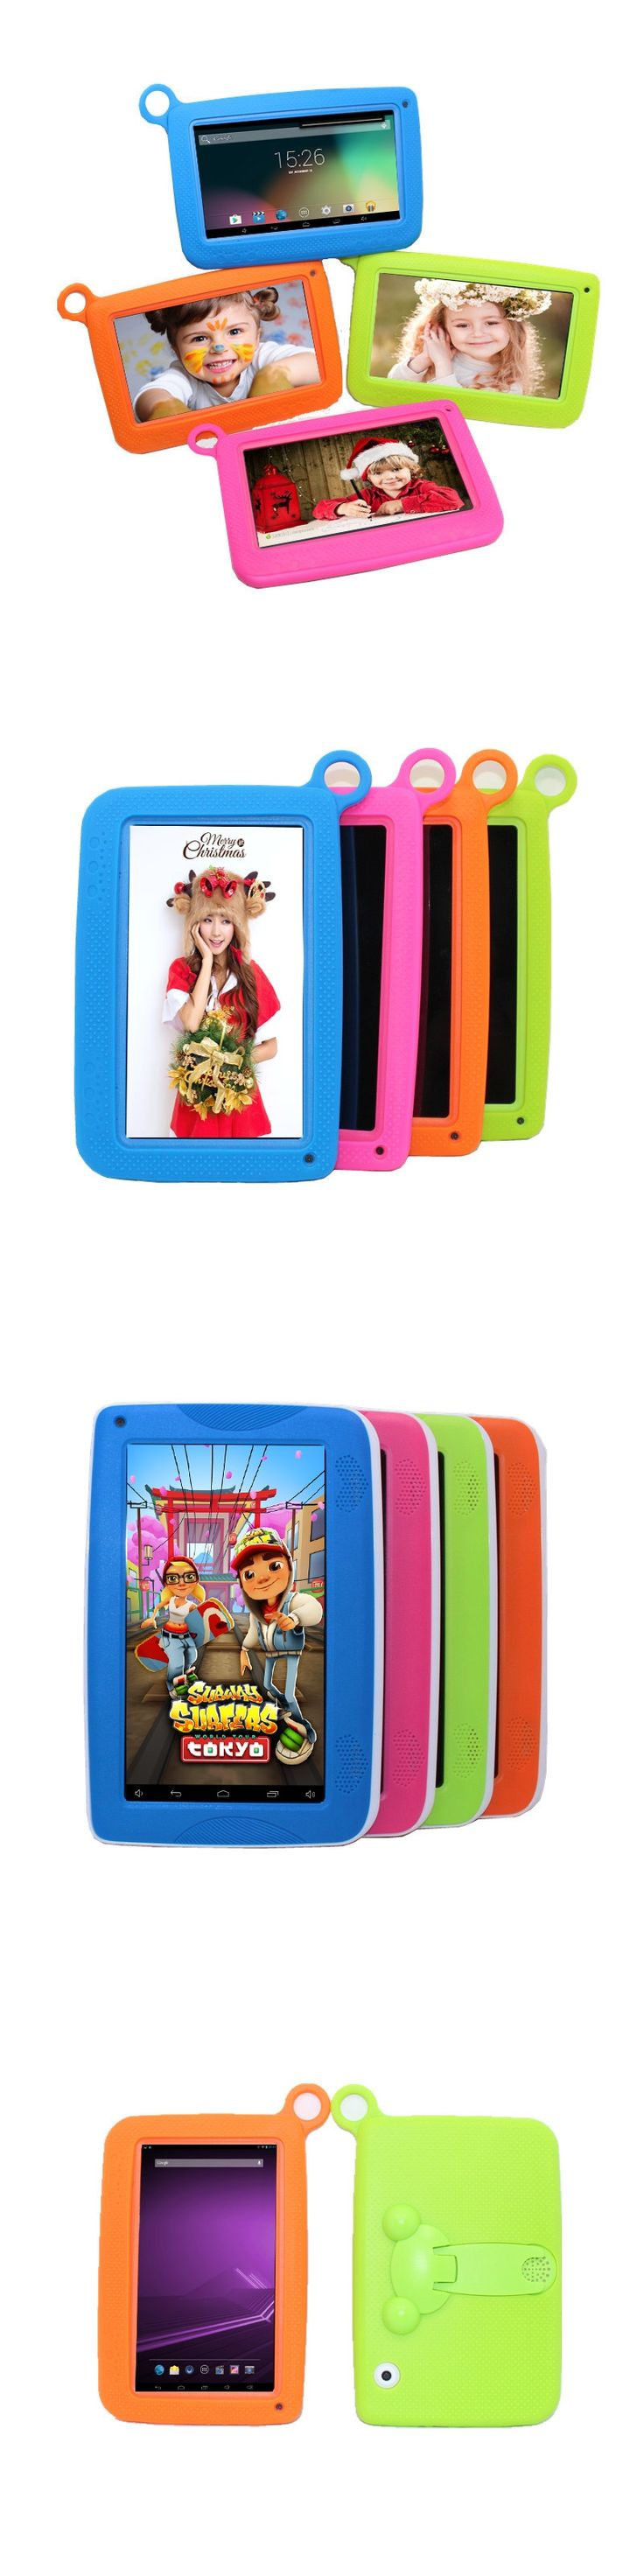 """Children Tablet PC 7"""" Quad Core tablet Android 4.4 Allwinner A33 8GB Wifi Bluetooth game study kids tablet PAD Gift Siliconcase"""